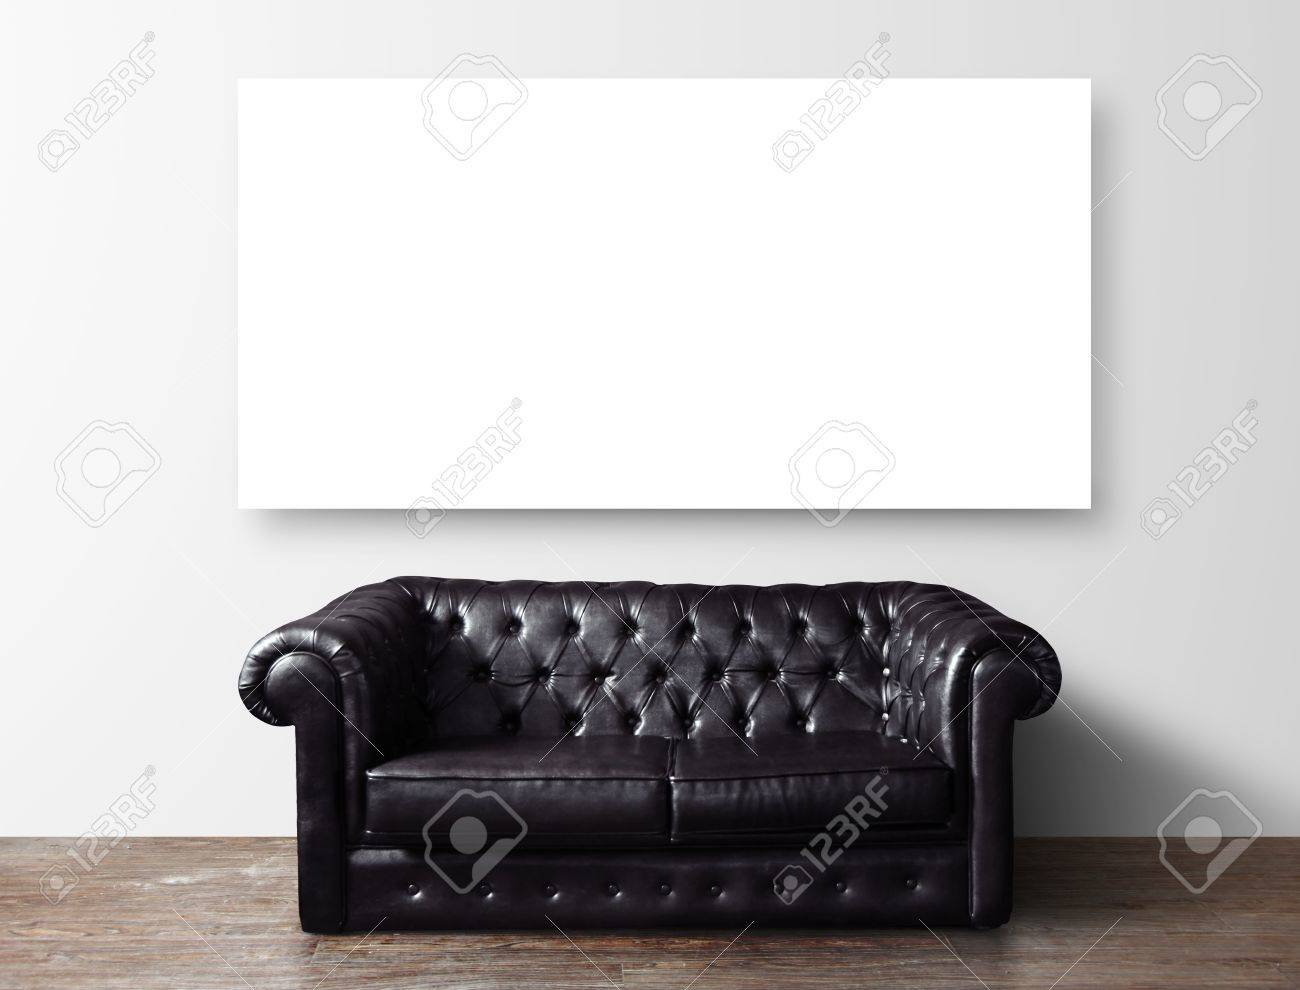 Black Leather Sofa In Room And Blank Poster On Wall Stock Photo ...